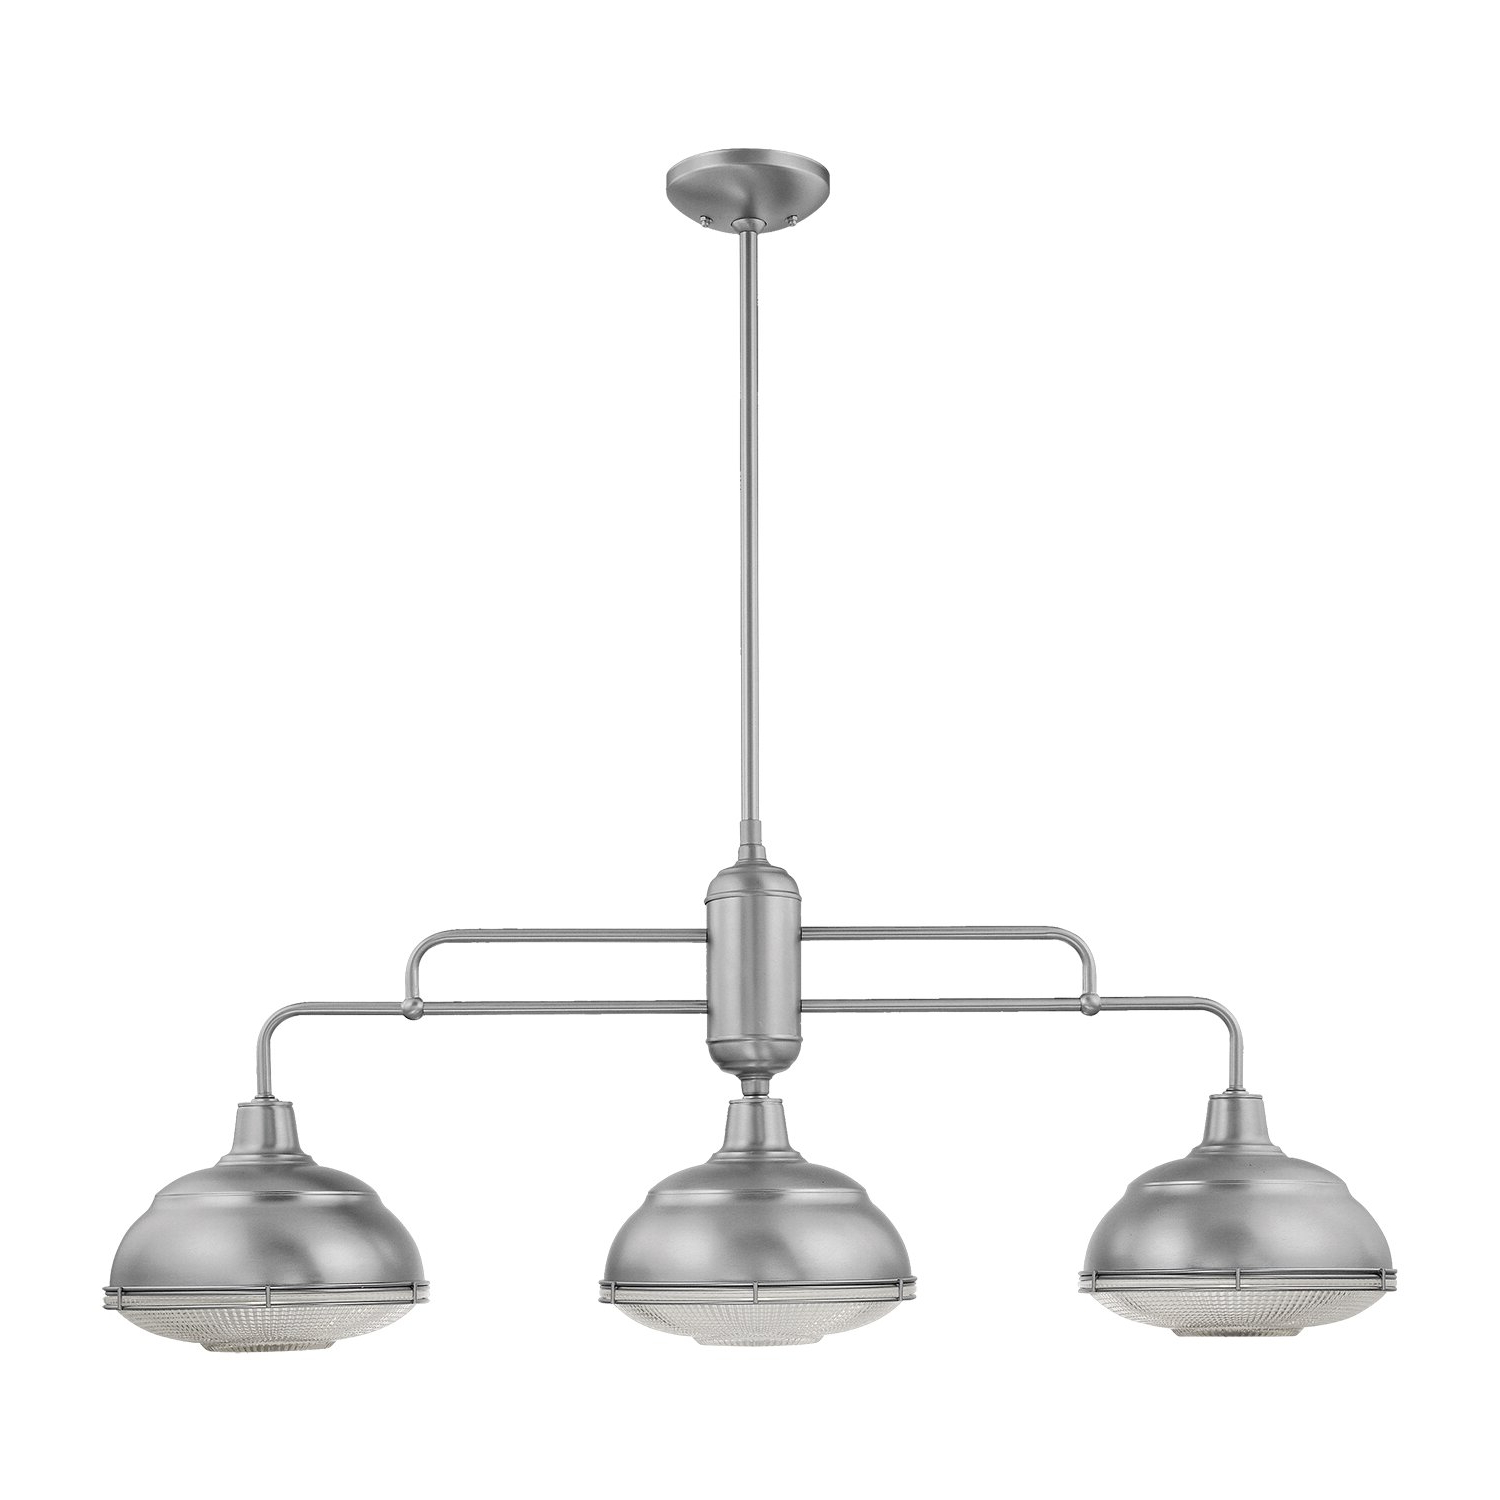 Martinique 3 Light Kitchen Island Dome Pendants Within 2019 Bruges 3 Light Kitchen Island Dome Pendant (View 12 of 25)